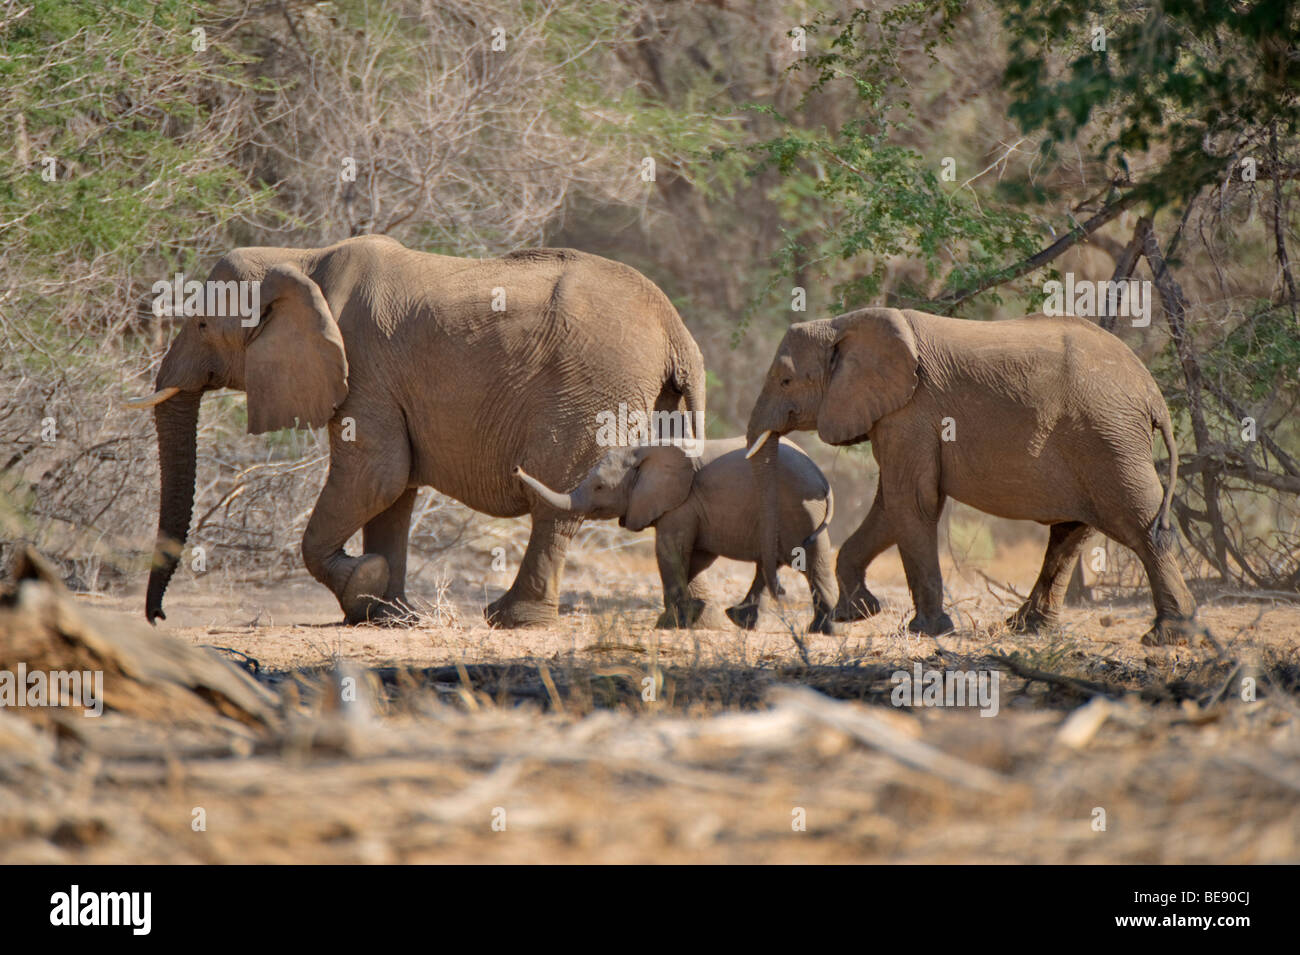 African Bush Elephants (Loxodonta africana) with young animals, in the Ugab river valley, near Mt Brandberg, Namibia, Stock Photo